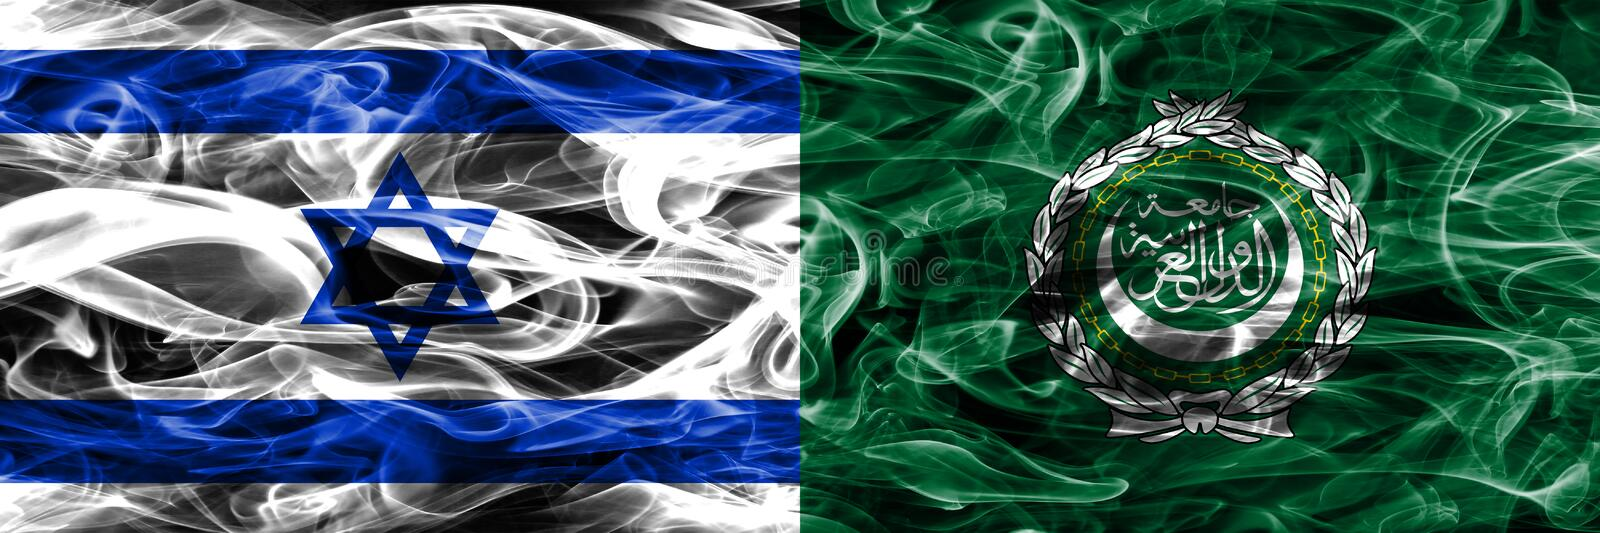 Israel vs Arab League smoke flags placed side by side. Israeli a royalty free stock photography